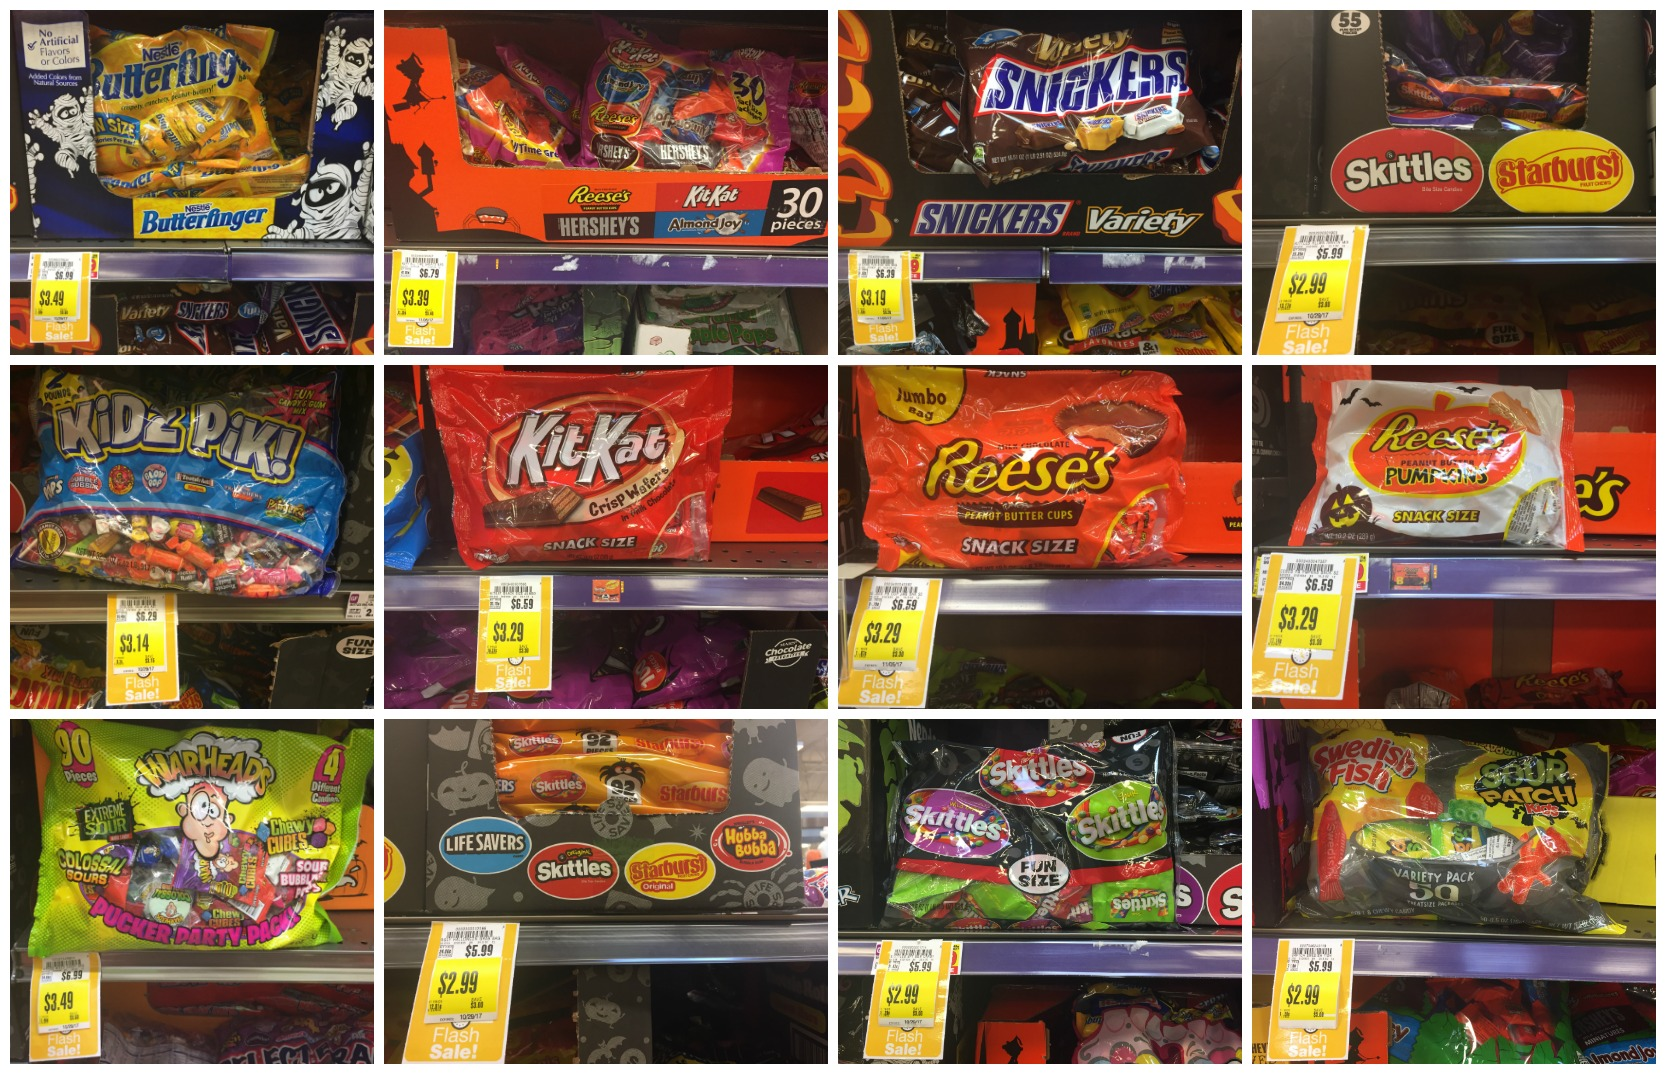 50% off halloween candy flash sale at kroger today (9/28) only